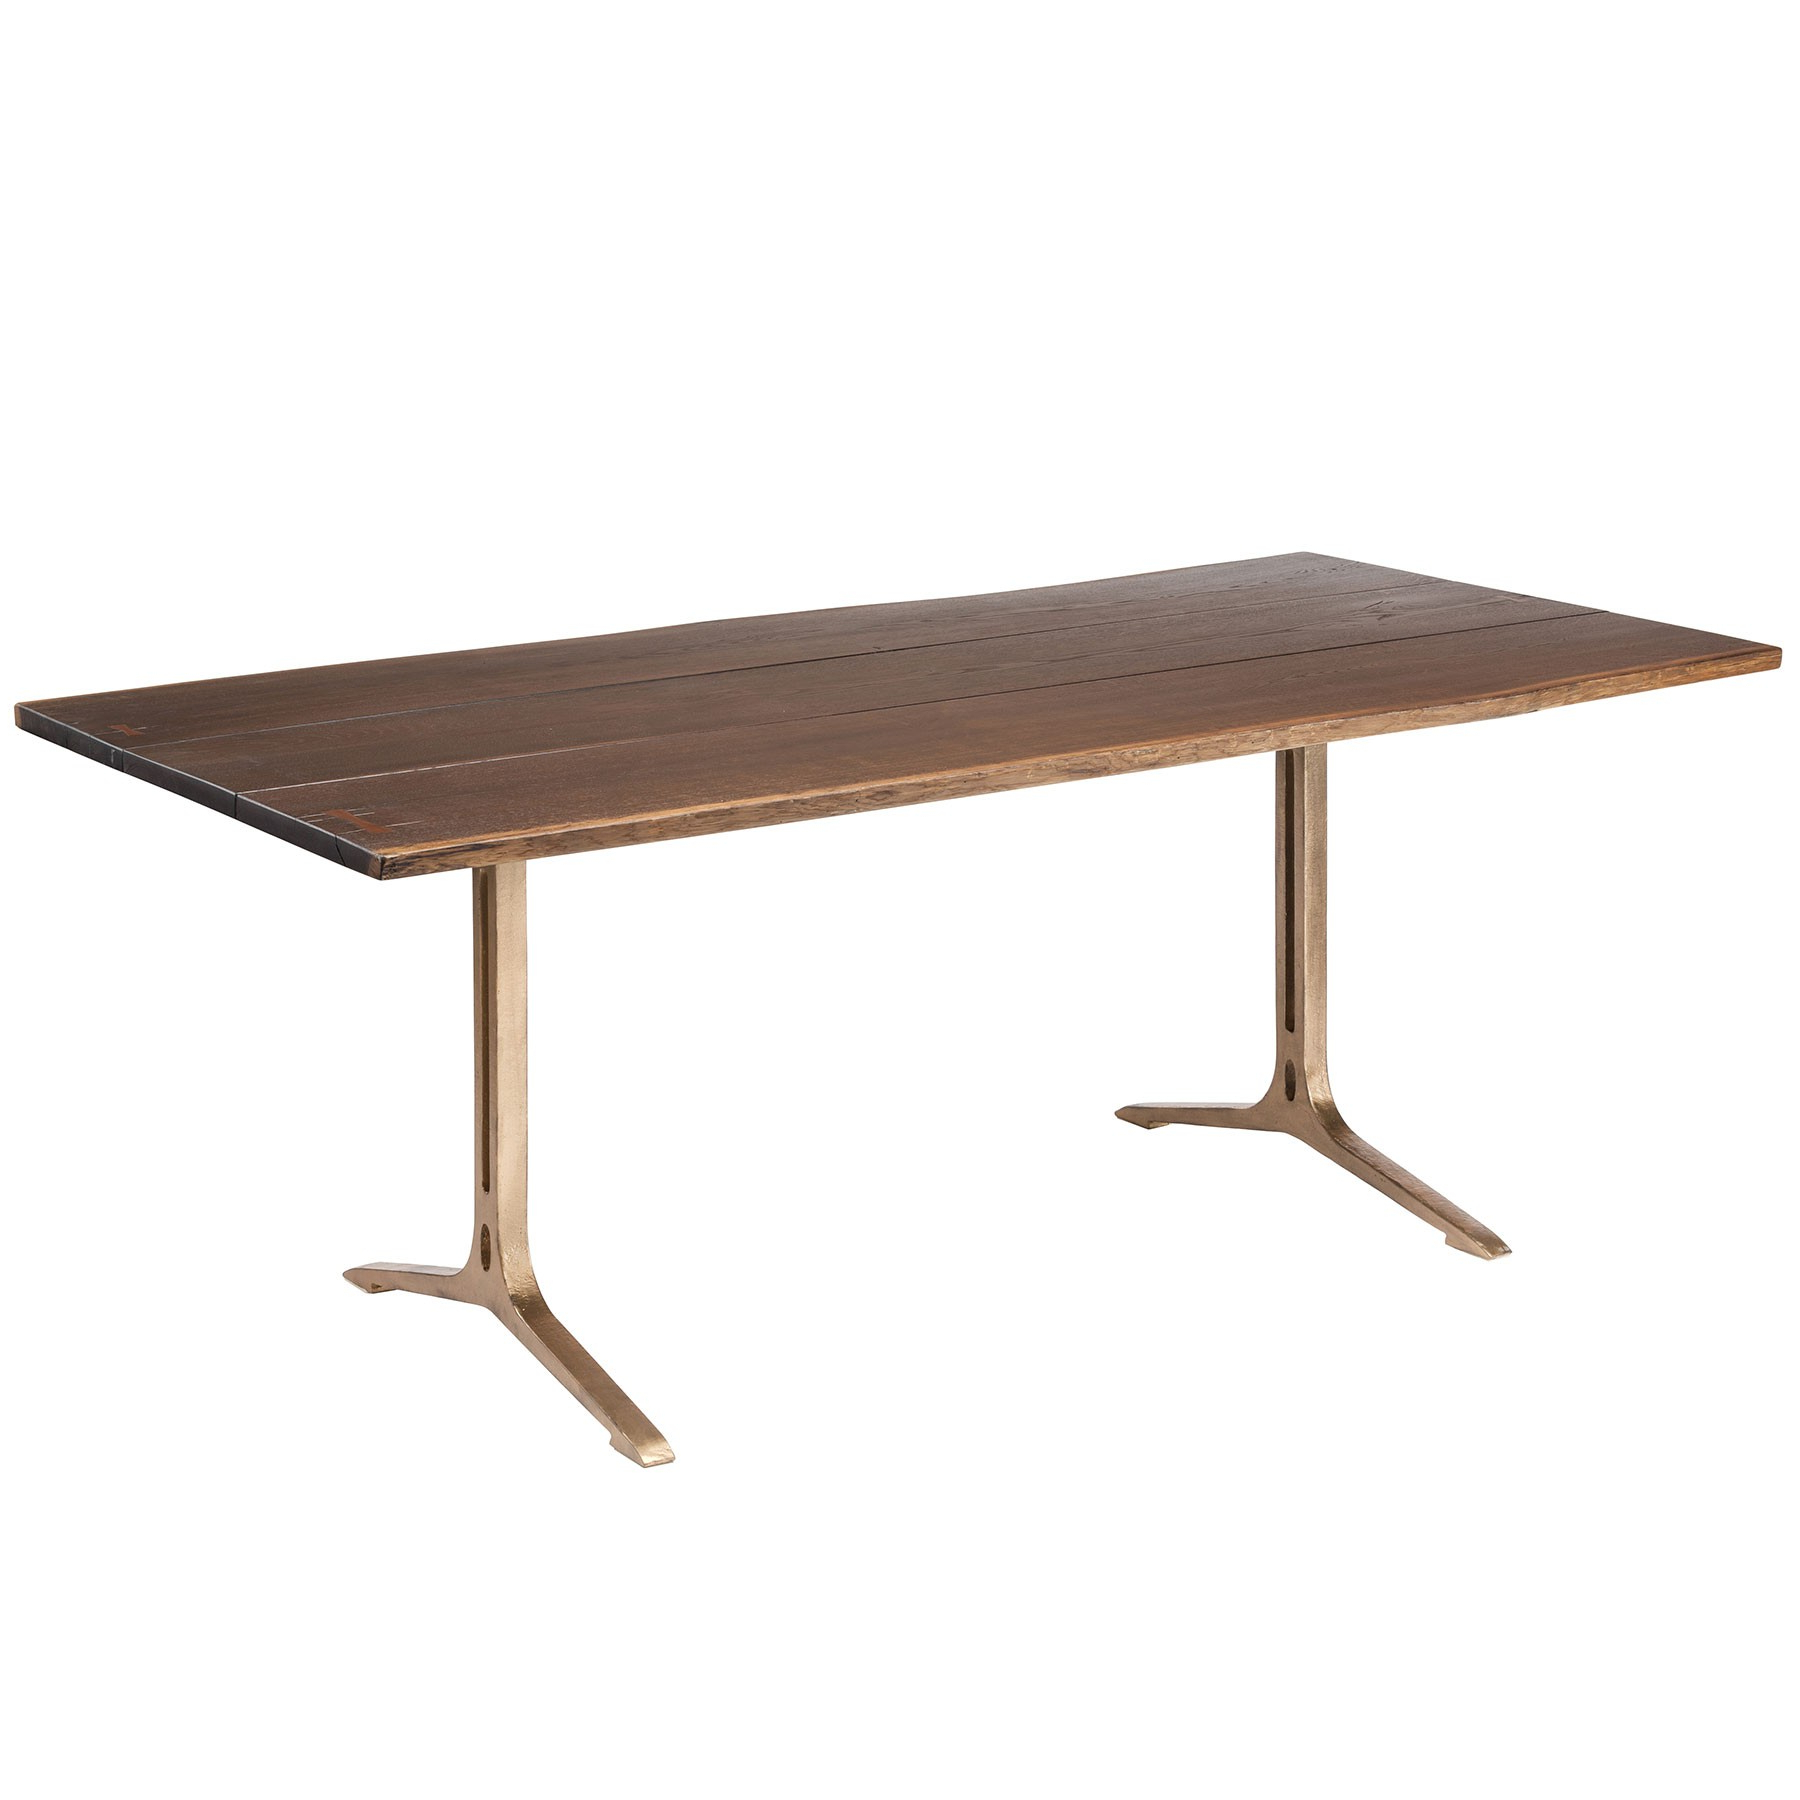 Samara Dining Table – Seared Oak / Bronze Within Most Recent Dining Tables In Smoked Seared Oak (View 2 of 30)